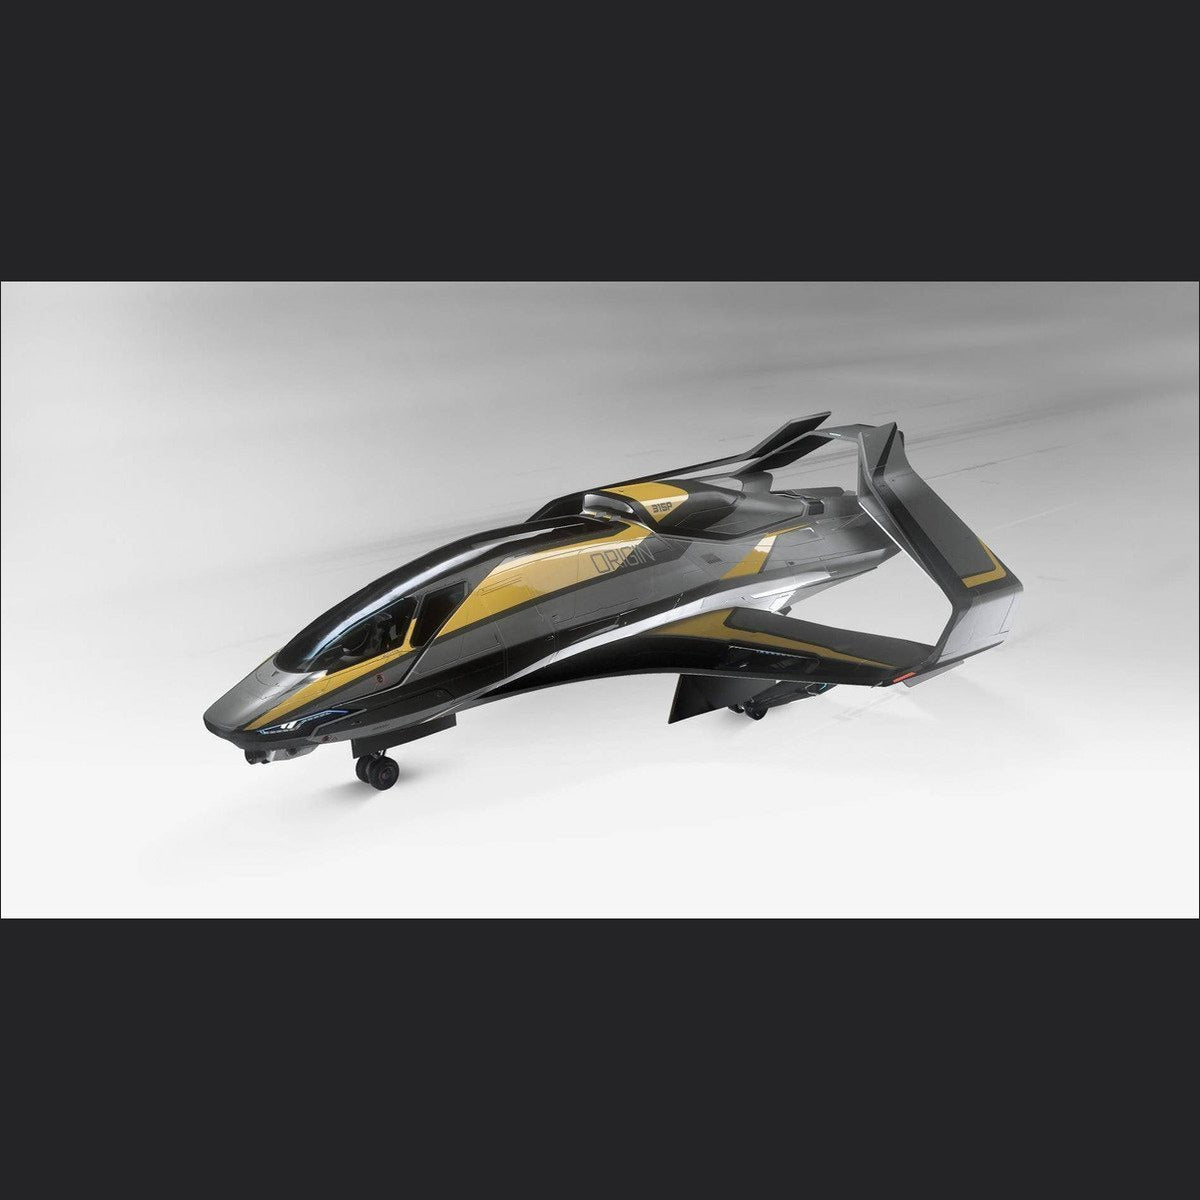 315P - LTI - CCUed | Standalone CCU'd Ship | JPEGS STORE | Space Foundry Marketplace.